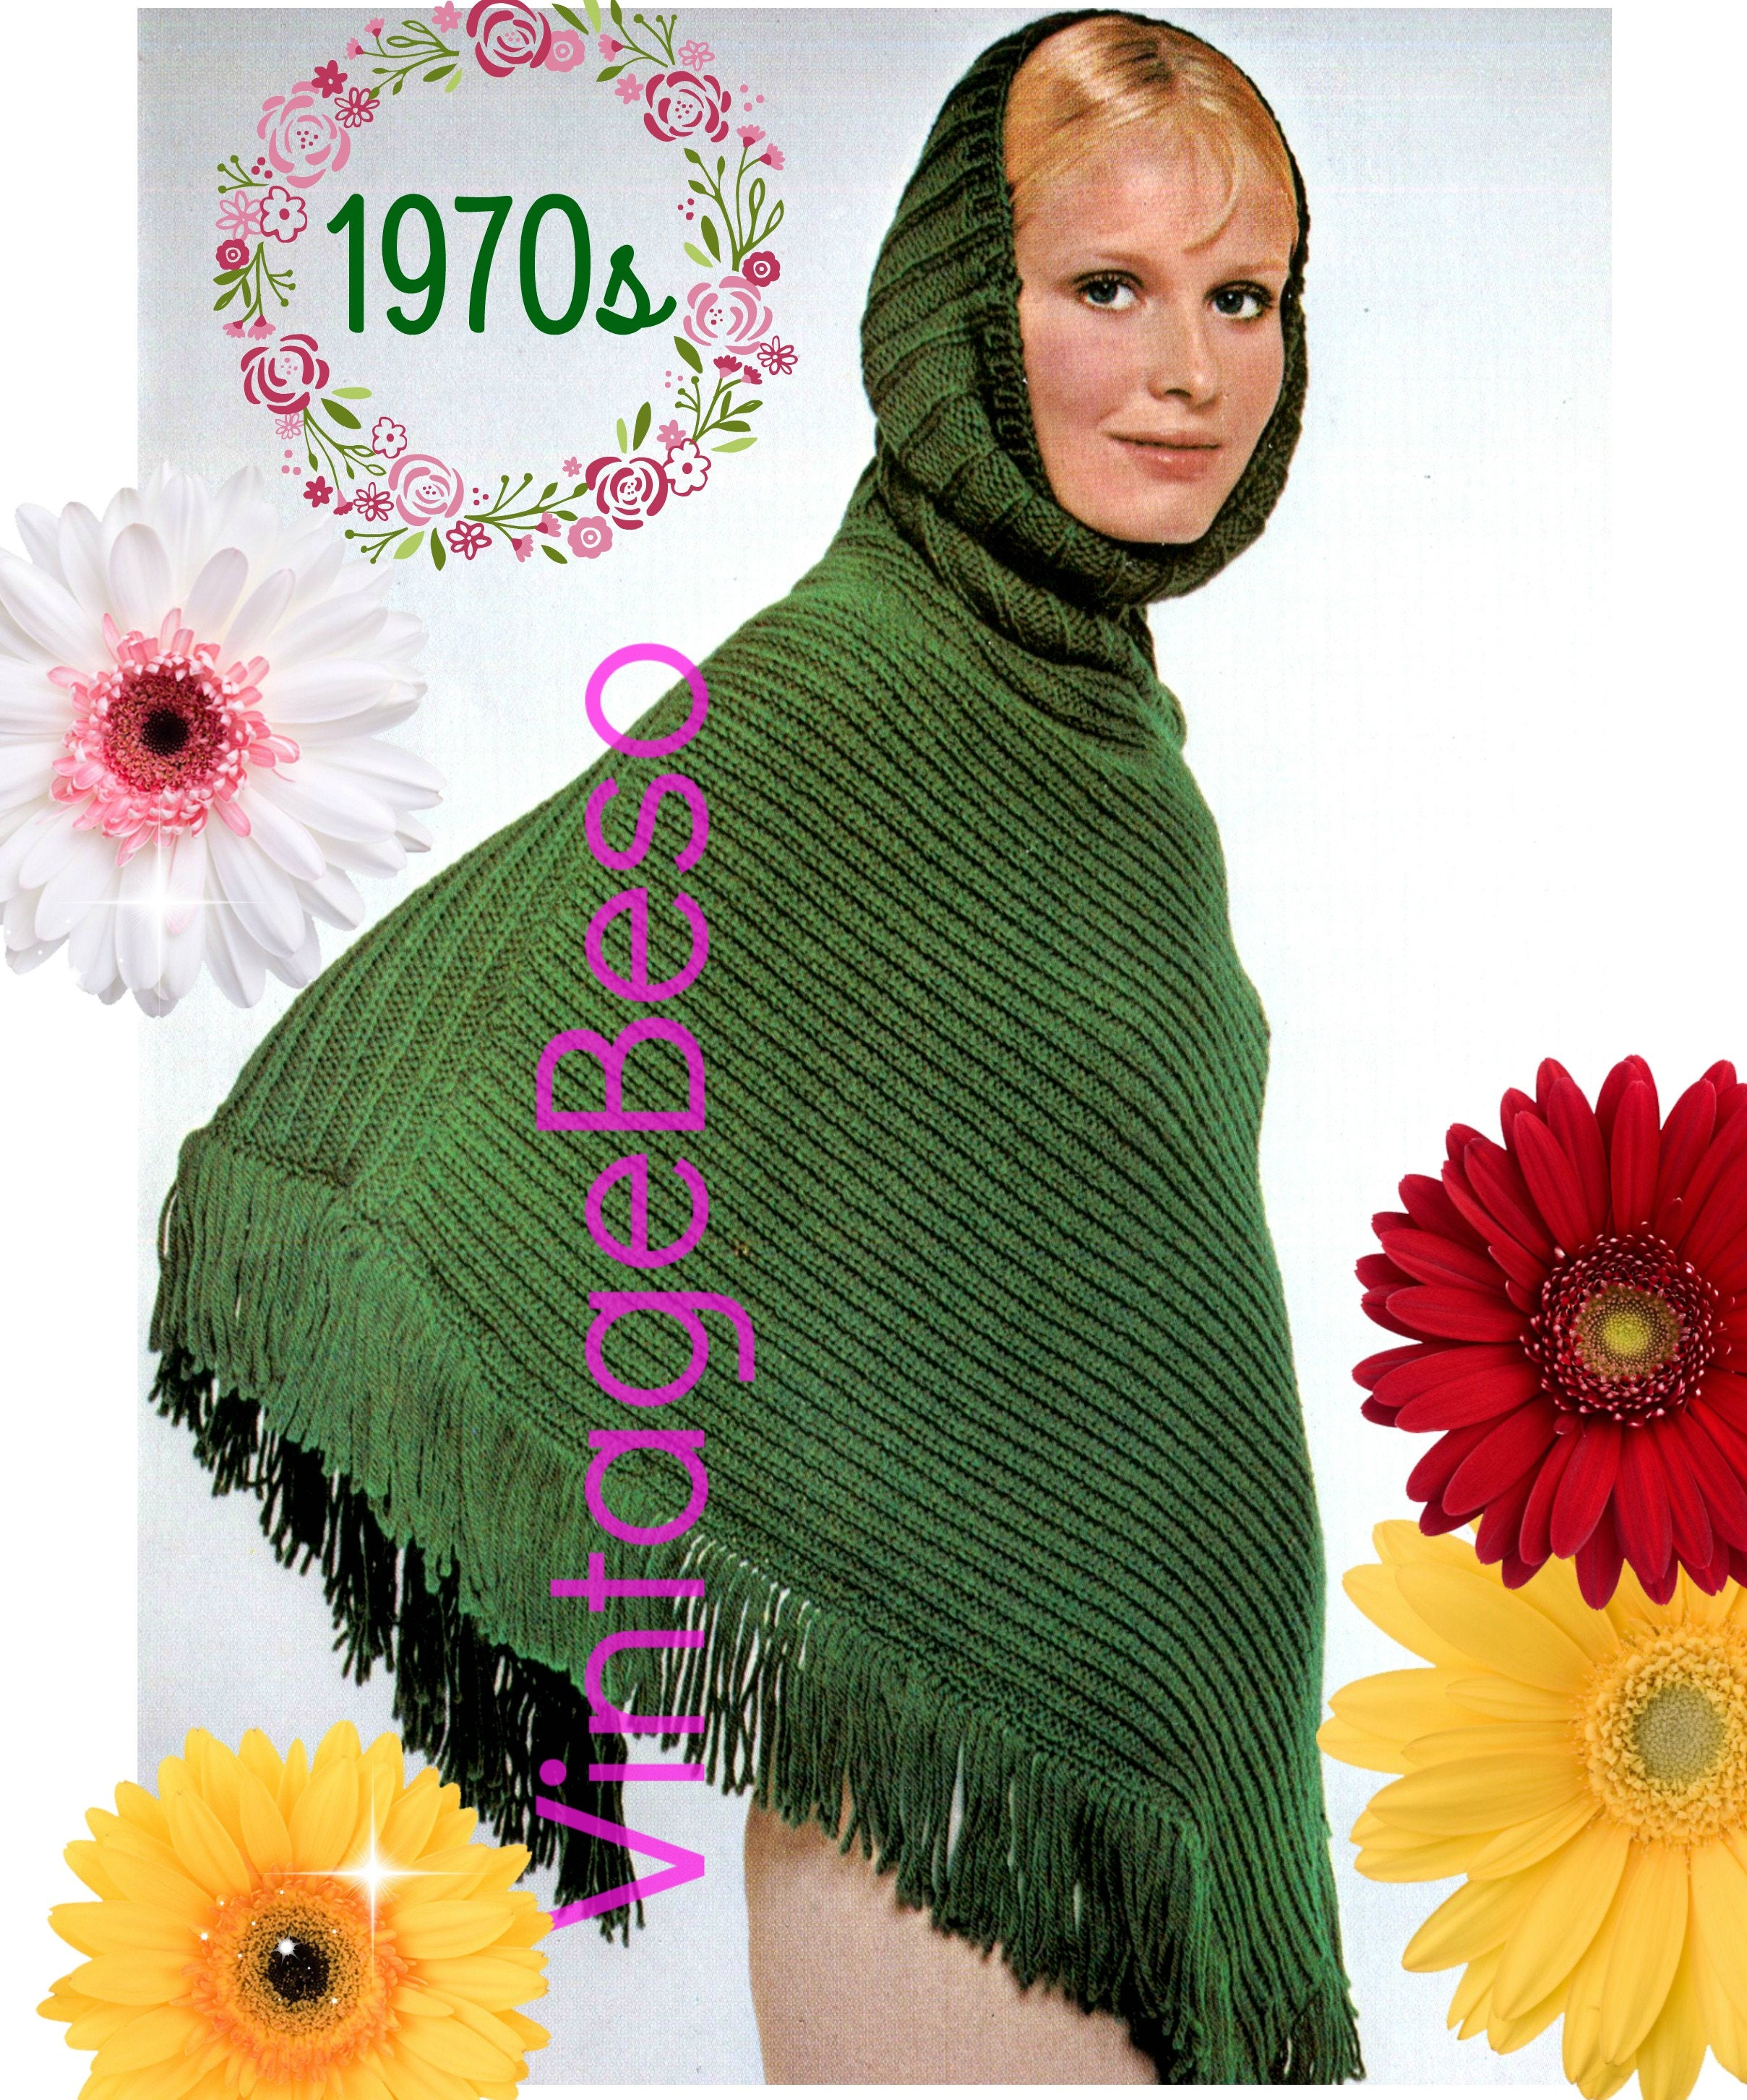 Hooded poncho knitting pattern 1970s knitting pattern pdf hooded poncho knitting pattern 1970s knitting pattern pdf pattern fringed poncho digital pattern mod modern retro vintage bankloansurffo Image collections